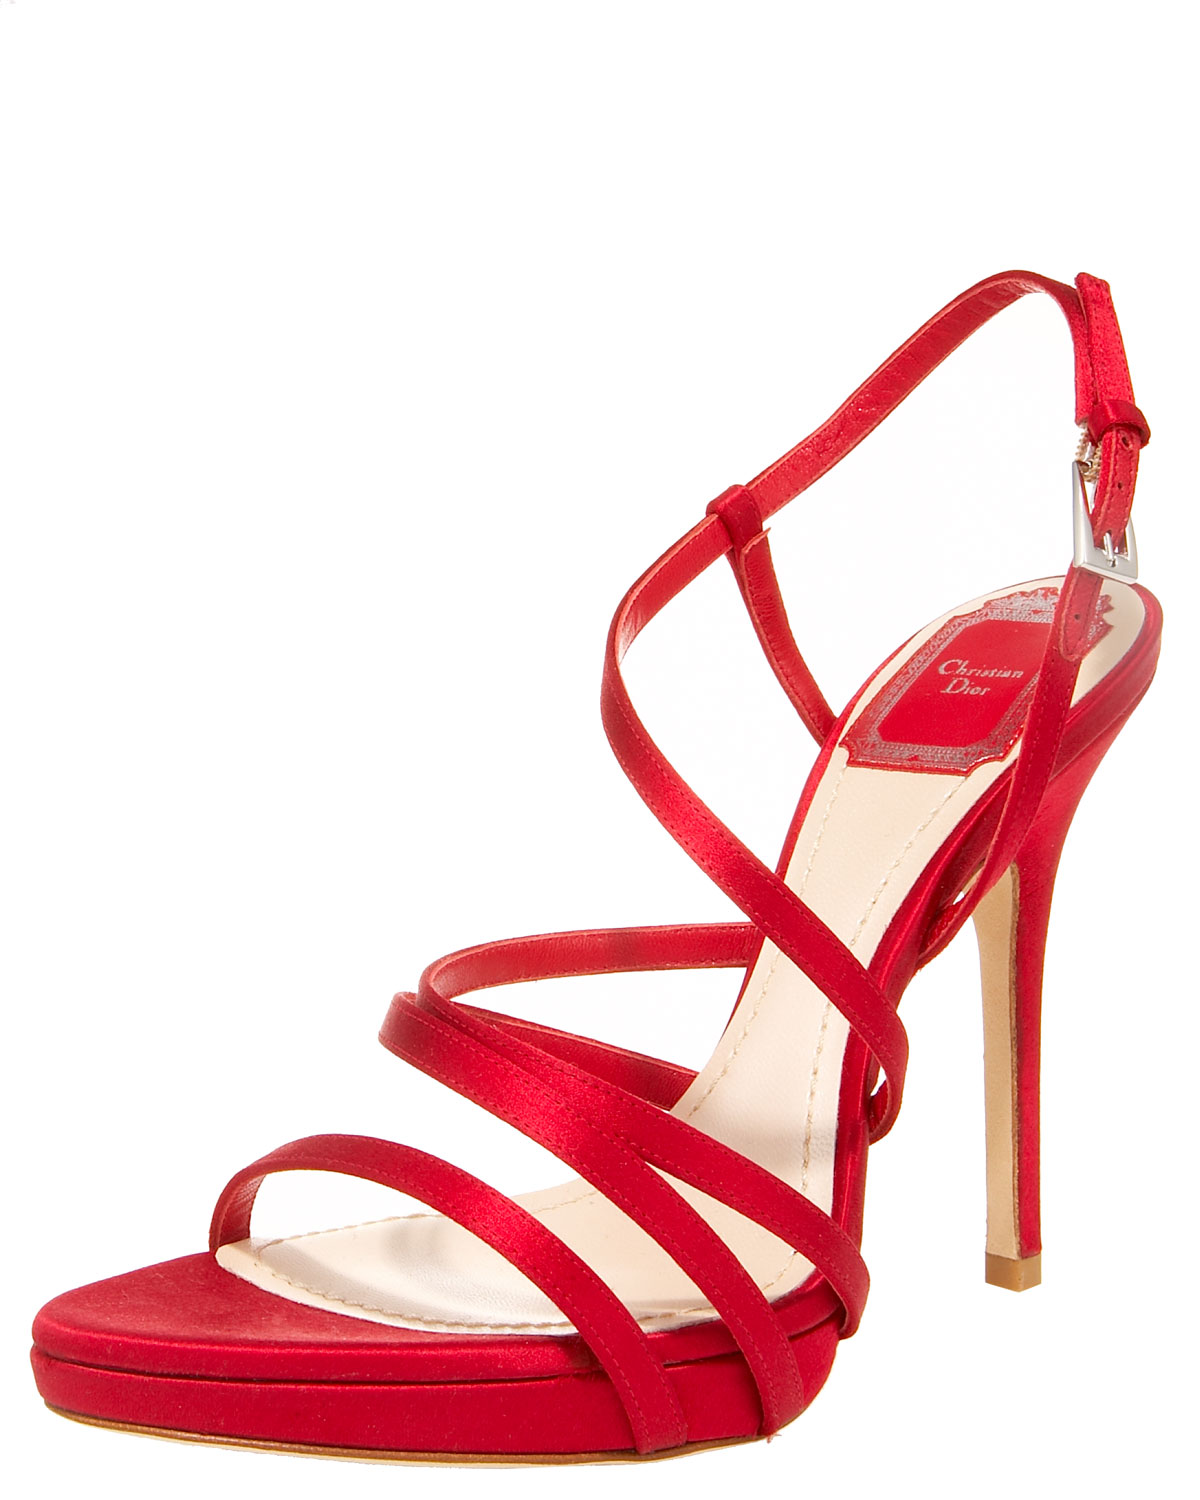 b2bc67a23f3 Lyst - Dior Strappy Satin Sandal in Red